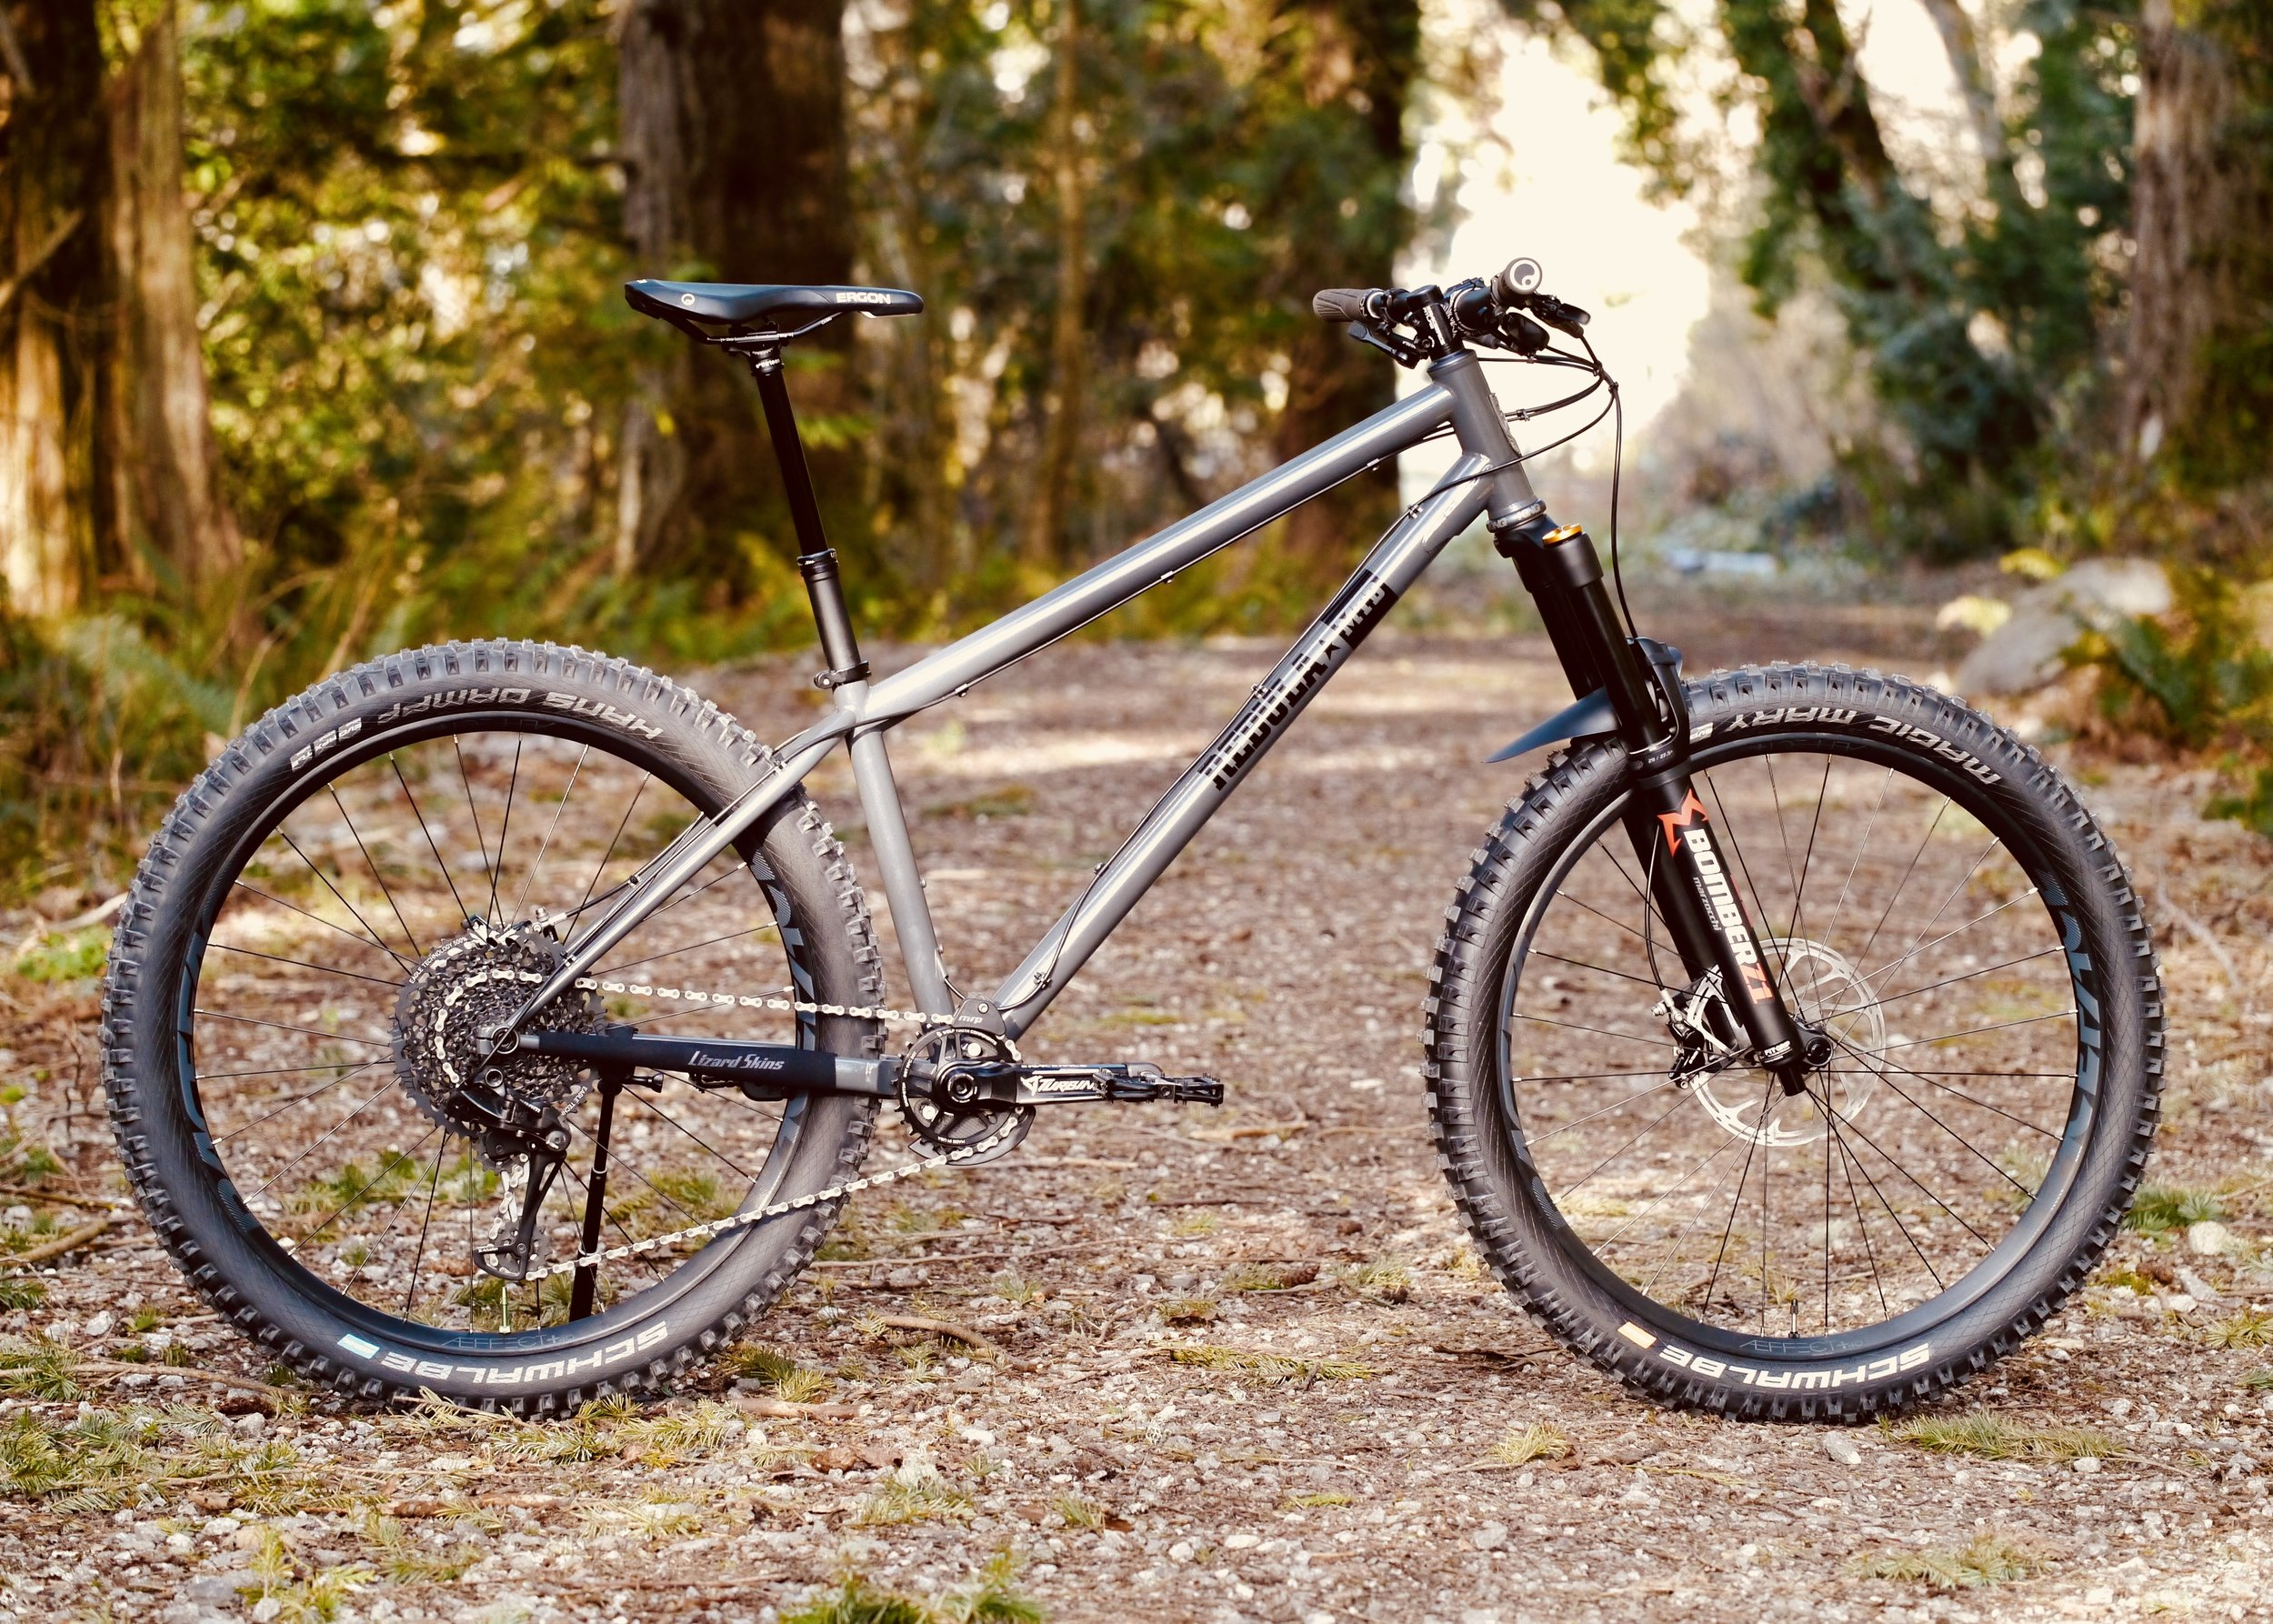 "GOSHAWK 150 - Confidence when it's steep and fast27.5"" x 2.8"" Tires150mm Suspension Travel66 Degree Head Angle35mm Stem Length"